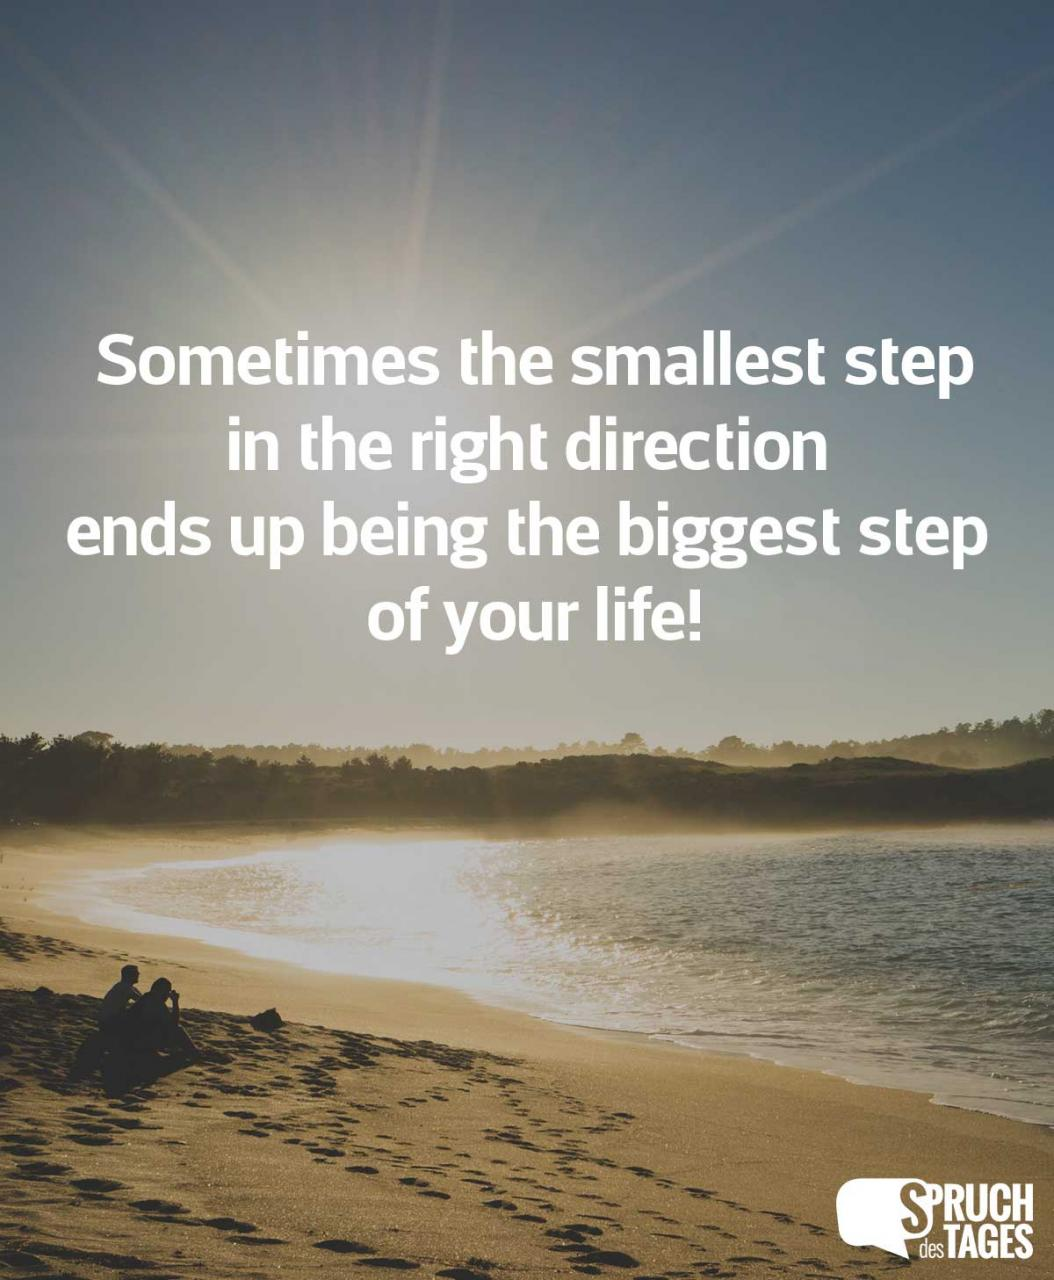 Sometimes The Smallest Step In The Right Direction Ends Up Being The Biggest Step Of Your